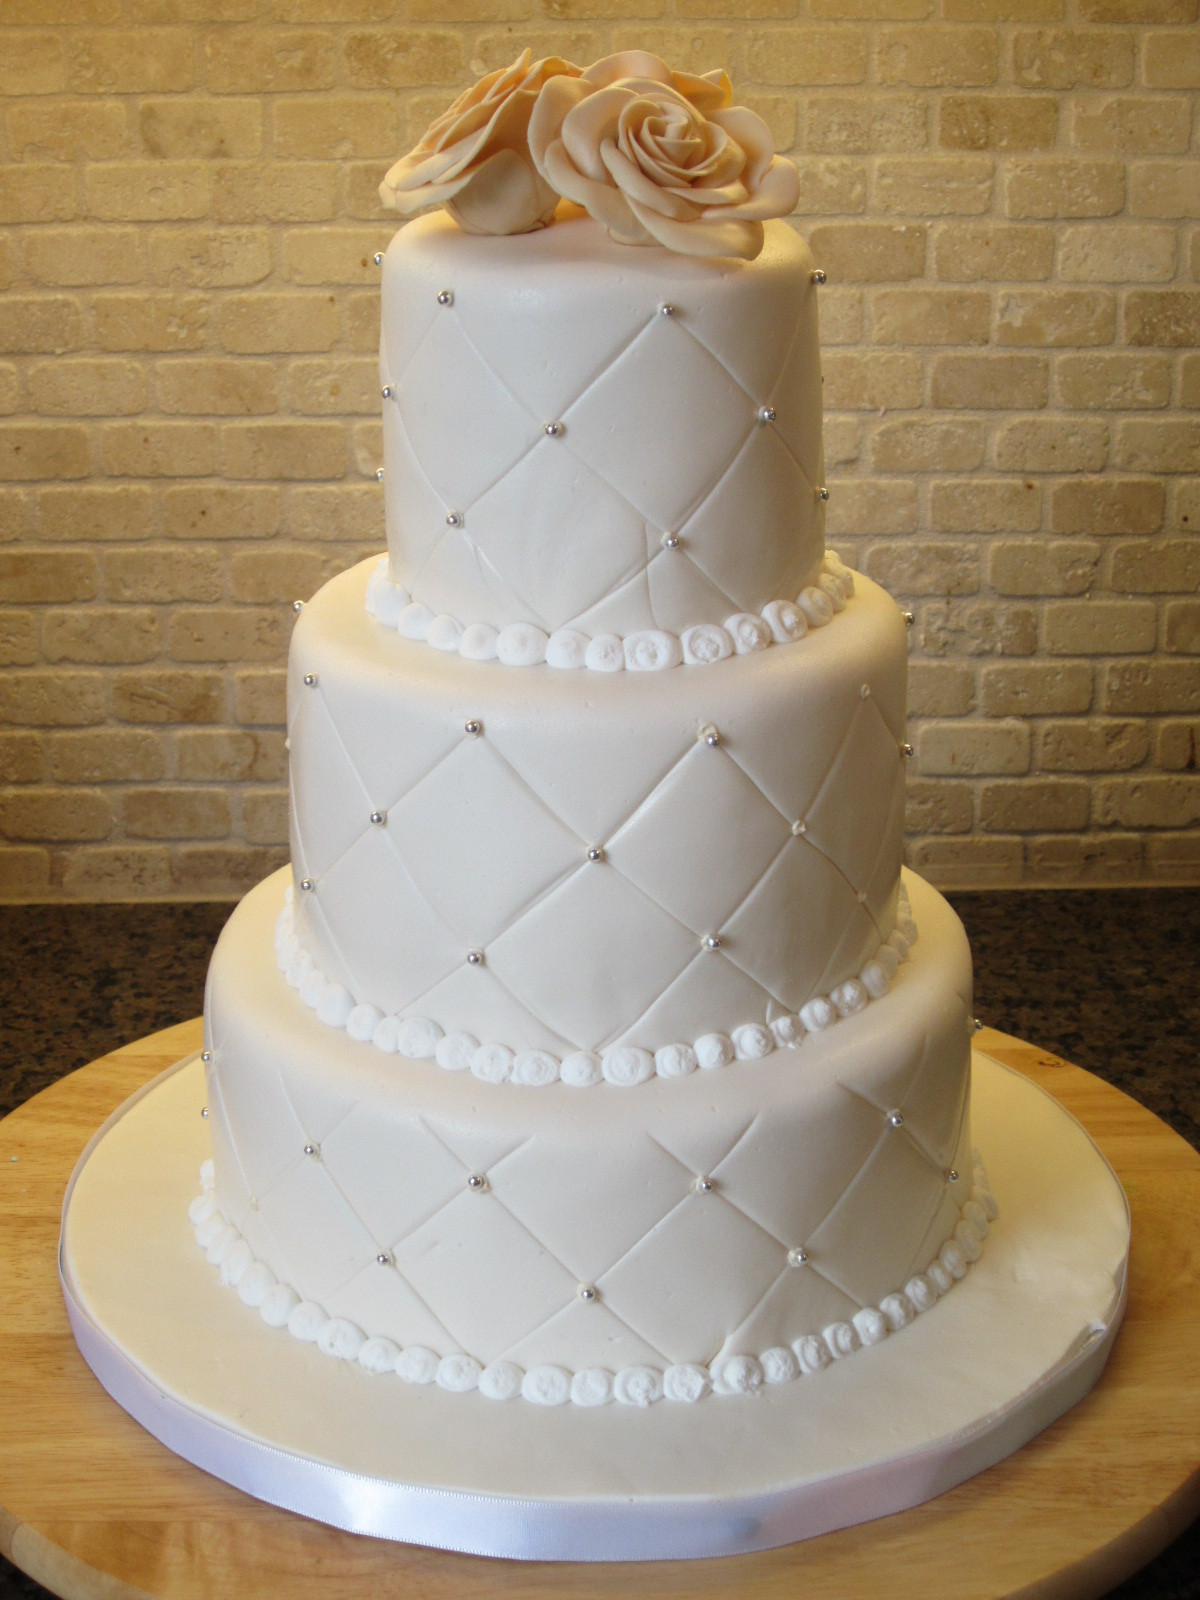 Top Of Wedding Cakes  Top 20 wedding cake idea trends and designs 2017